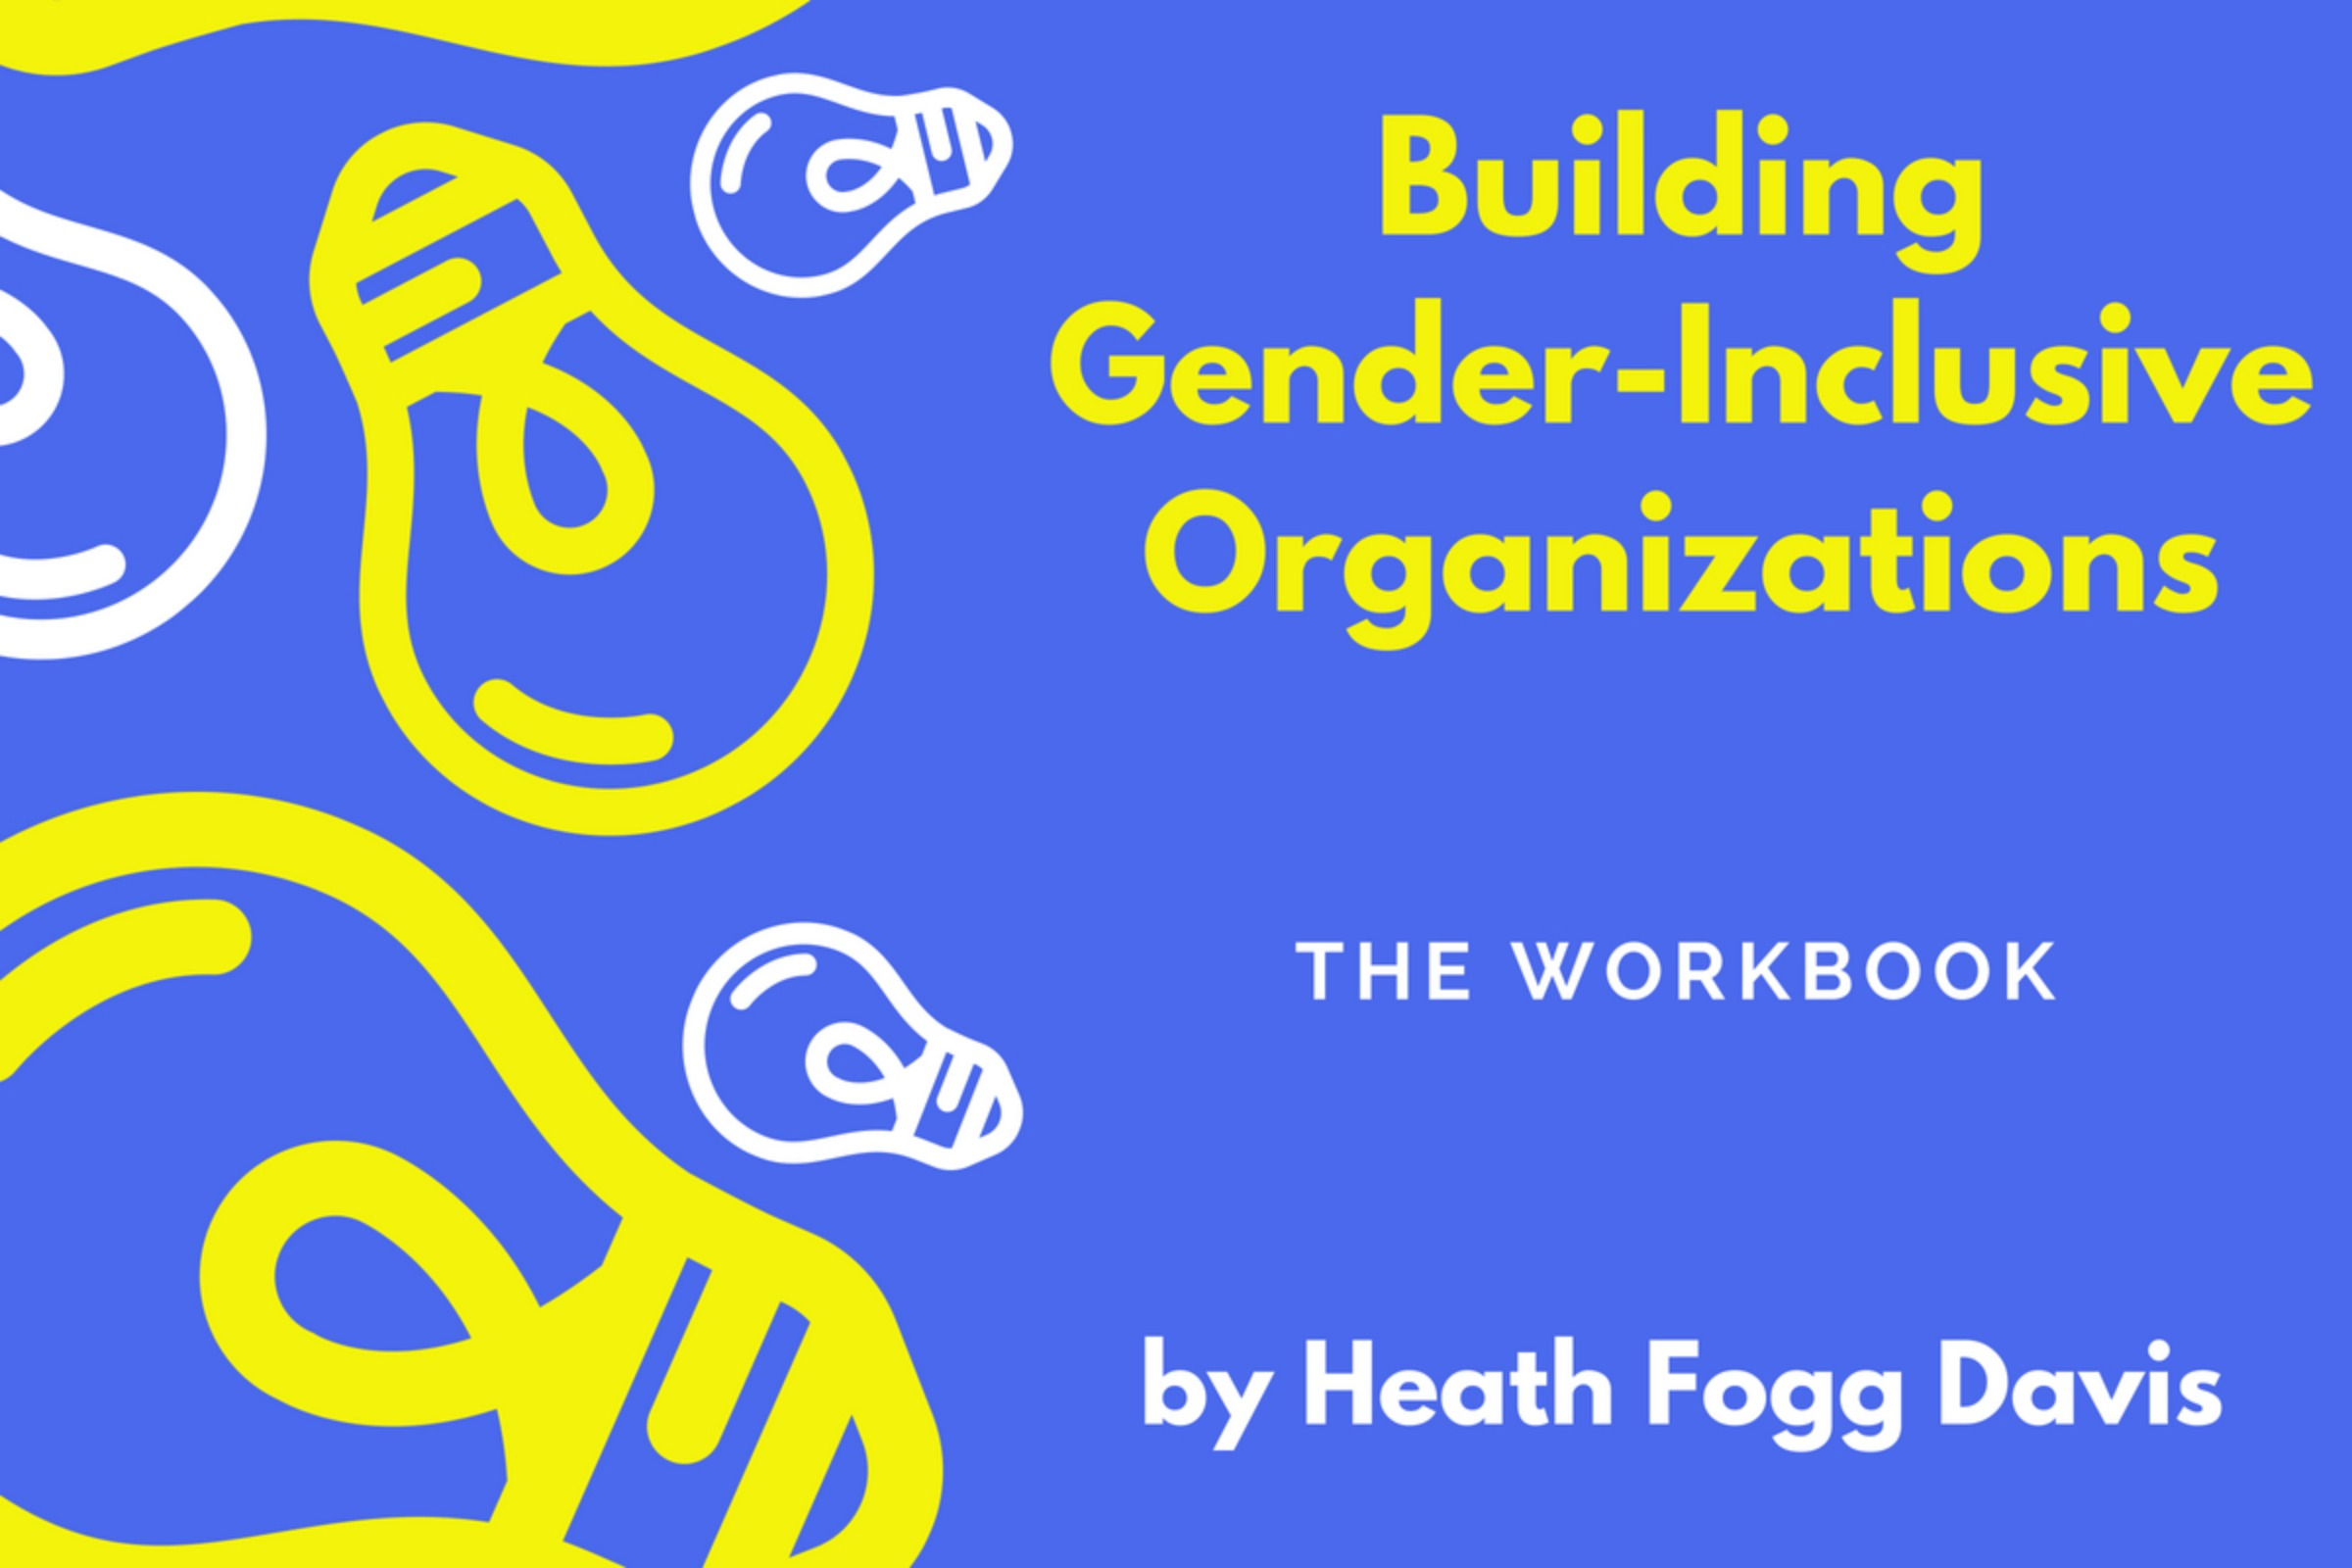 Building Gender-Inclusive Organizations: The Workbook (For For-Profits please pay $25)